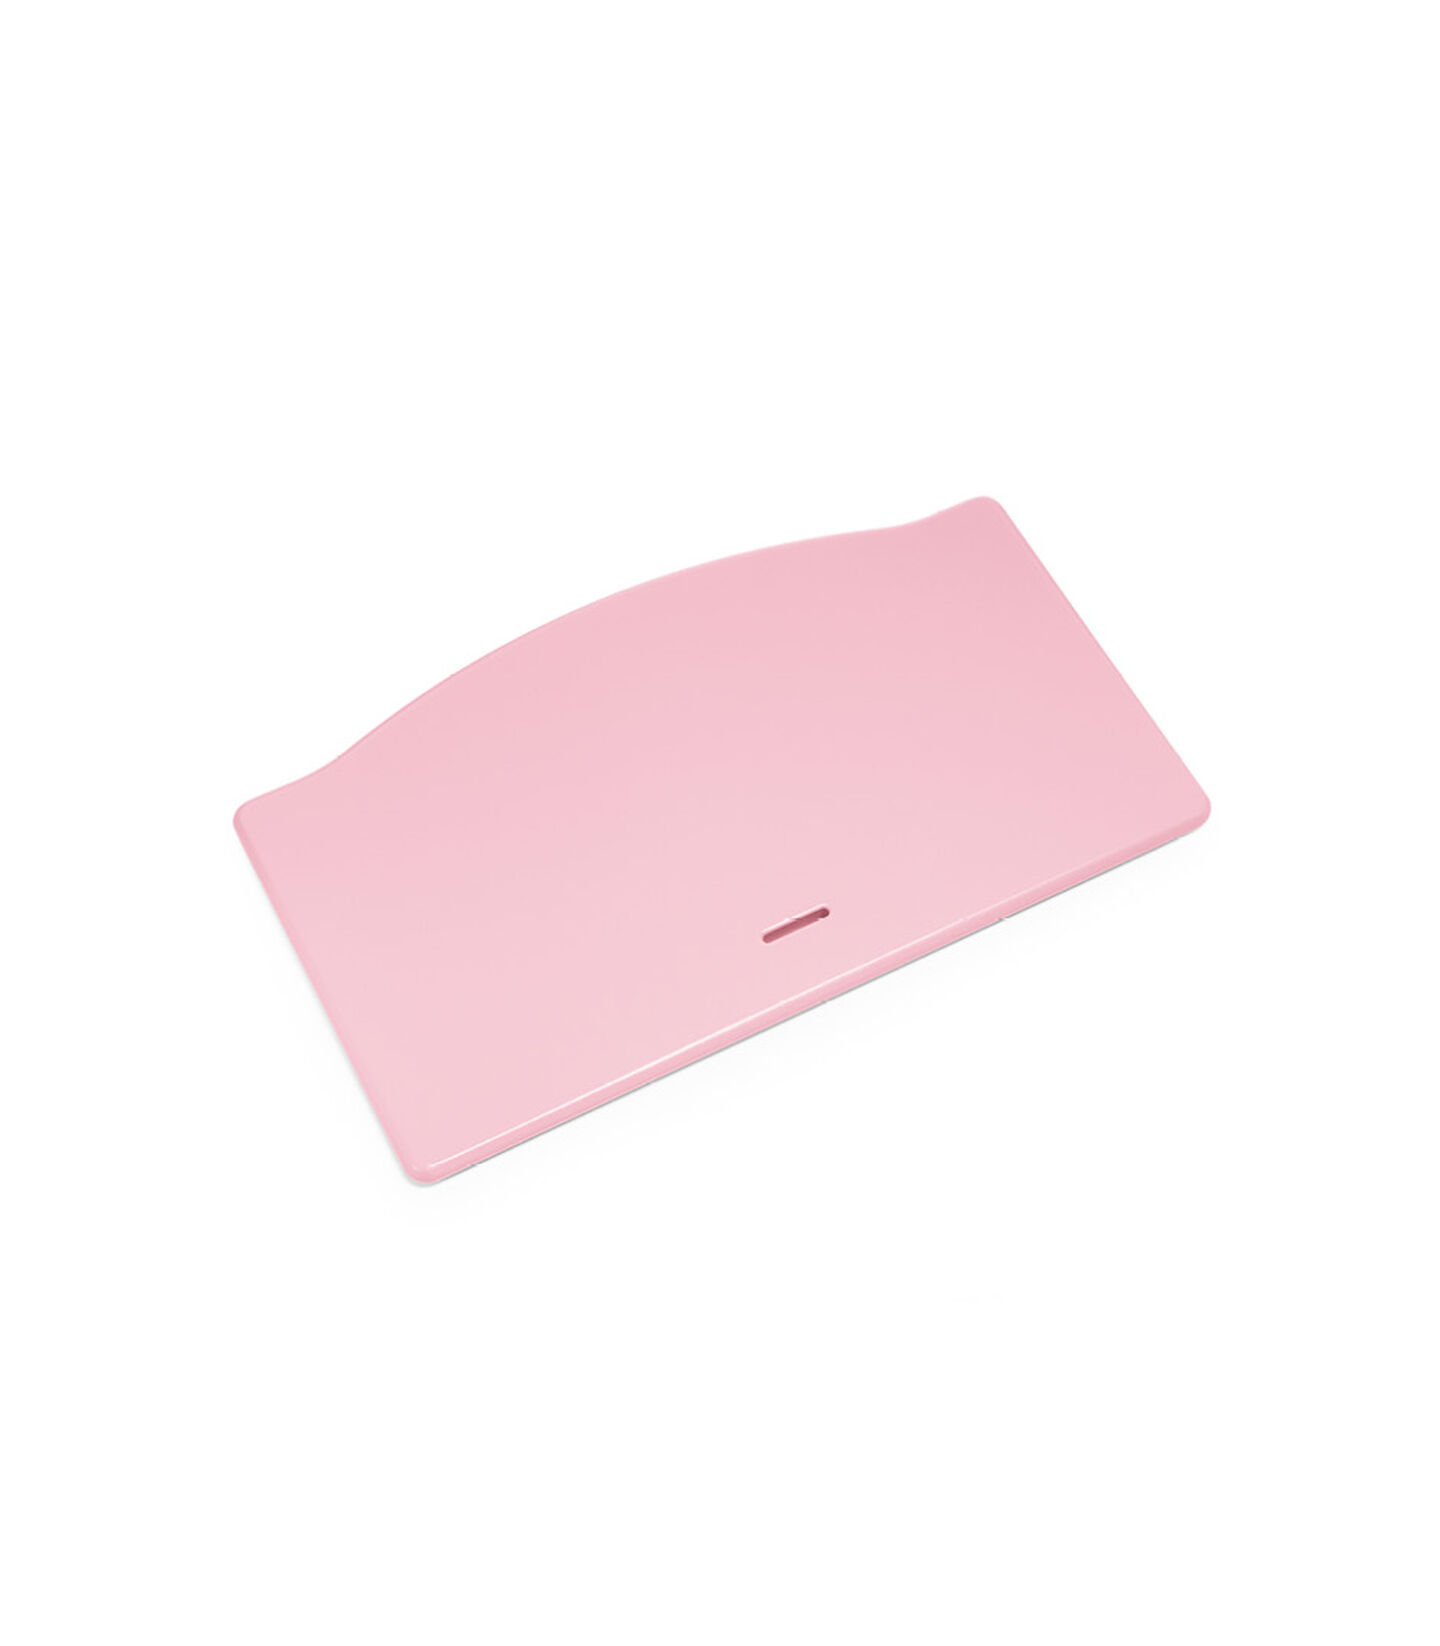 Tripp Trapp® Seatplate Soft Pink, Soft Pink, mainview view 2